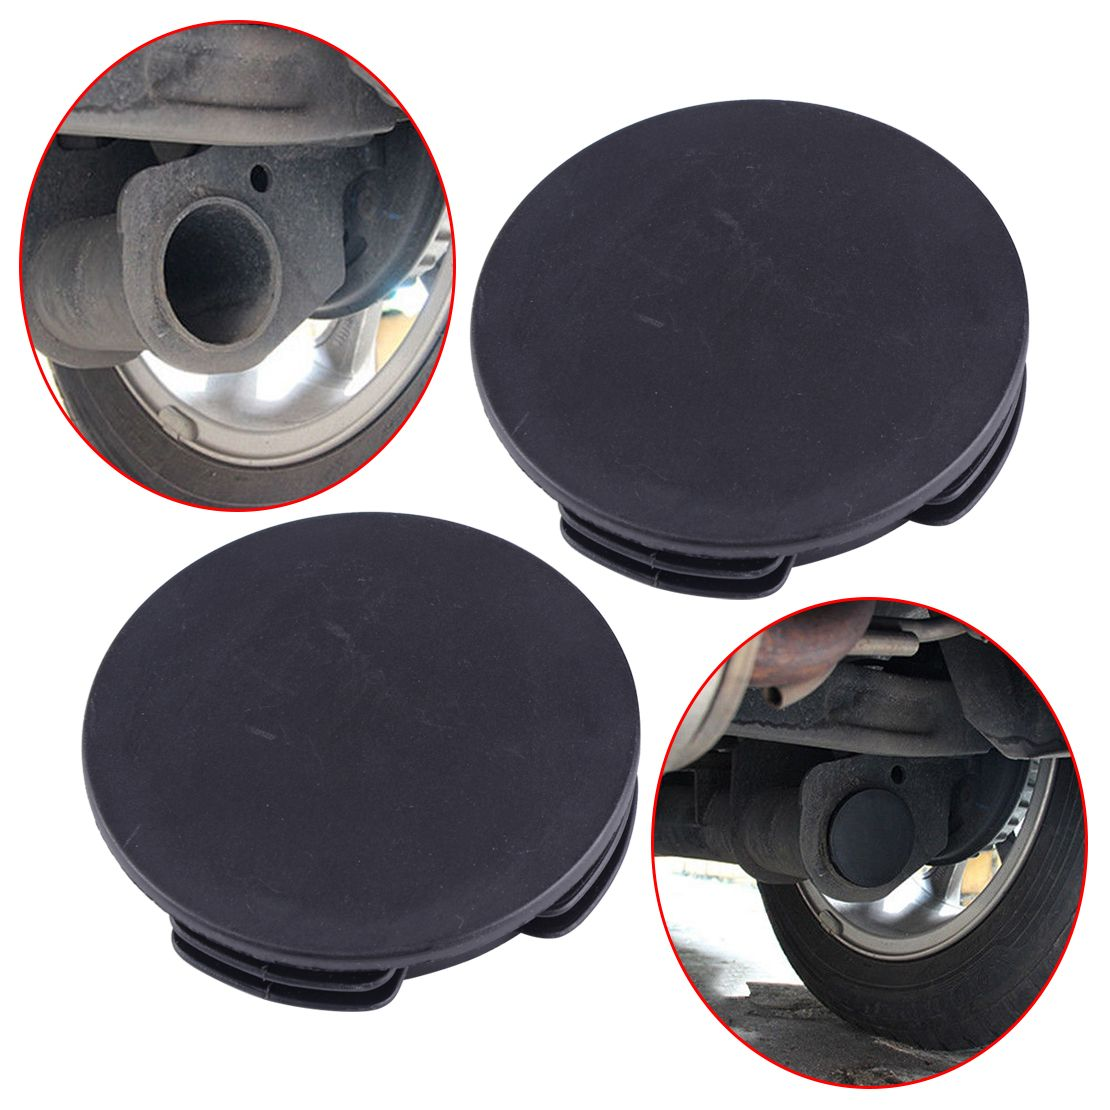 DWCX Exhaust Tail Pipe Tip Muffler Protector Cap Water Baffle Cover for Benz Smart Fortwo Forfour W451 2008-2014 Specification